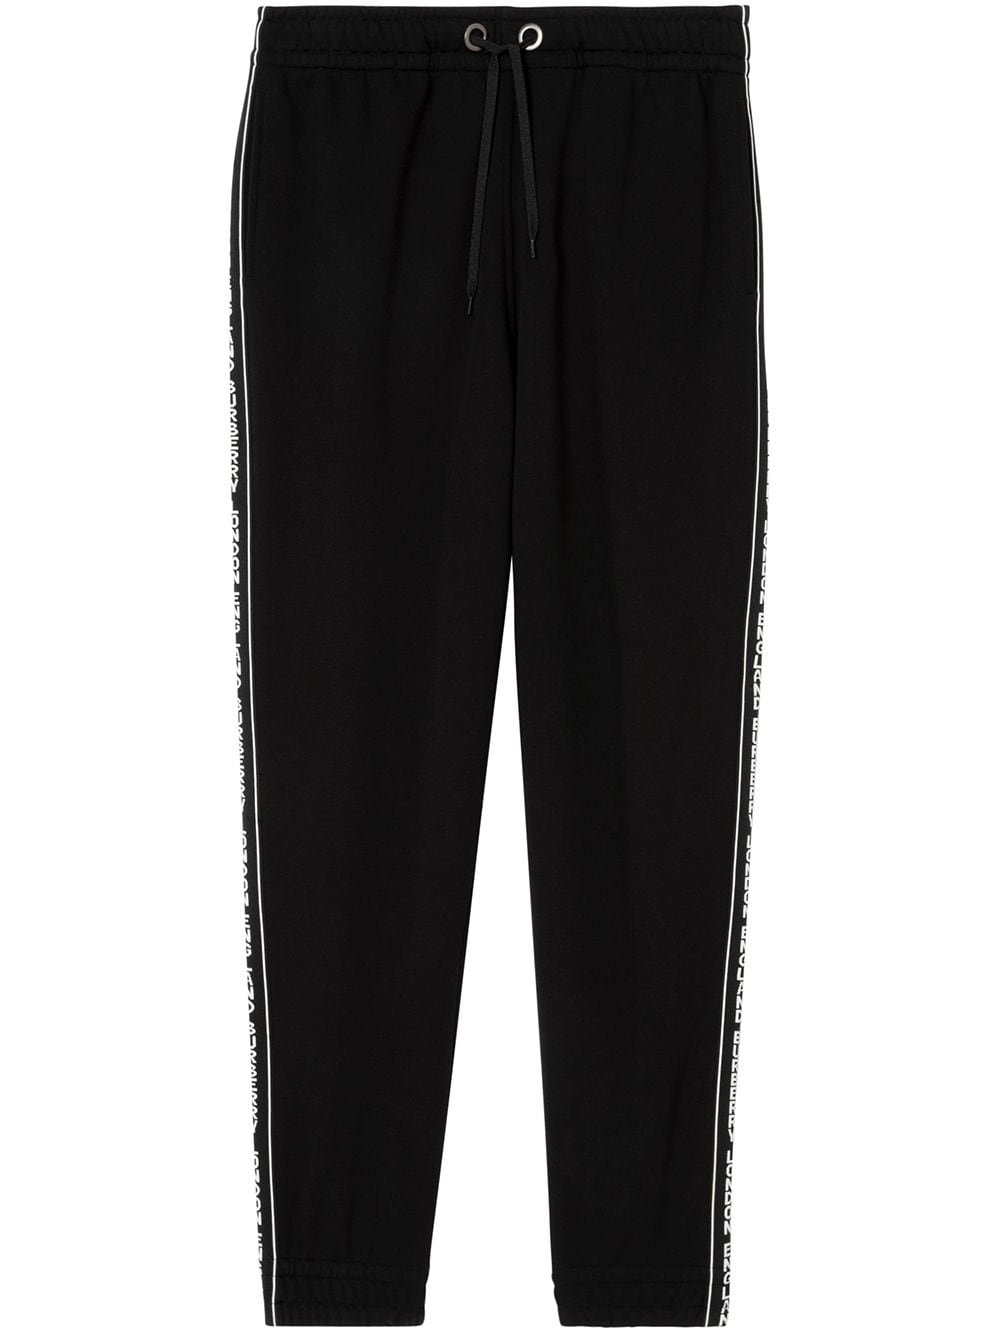 Tuckford Cotton Trousers